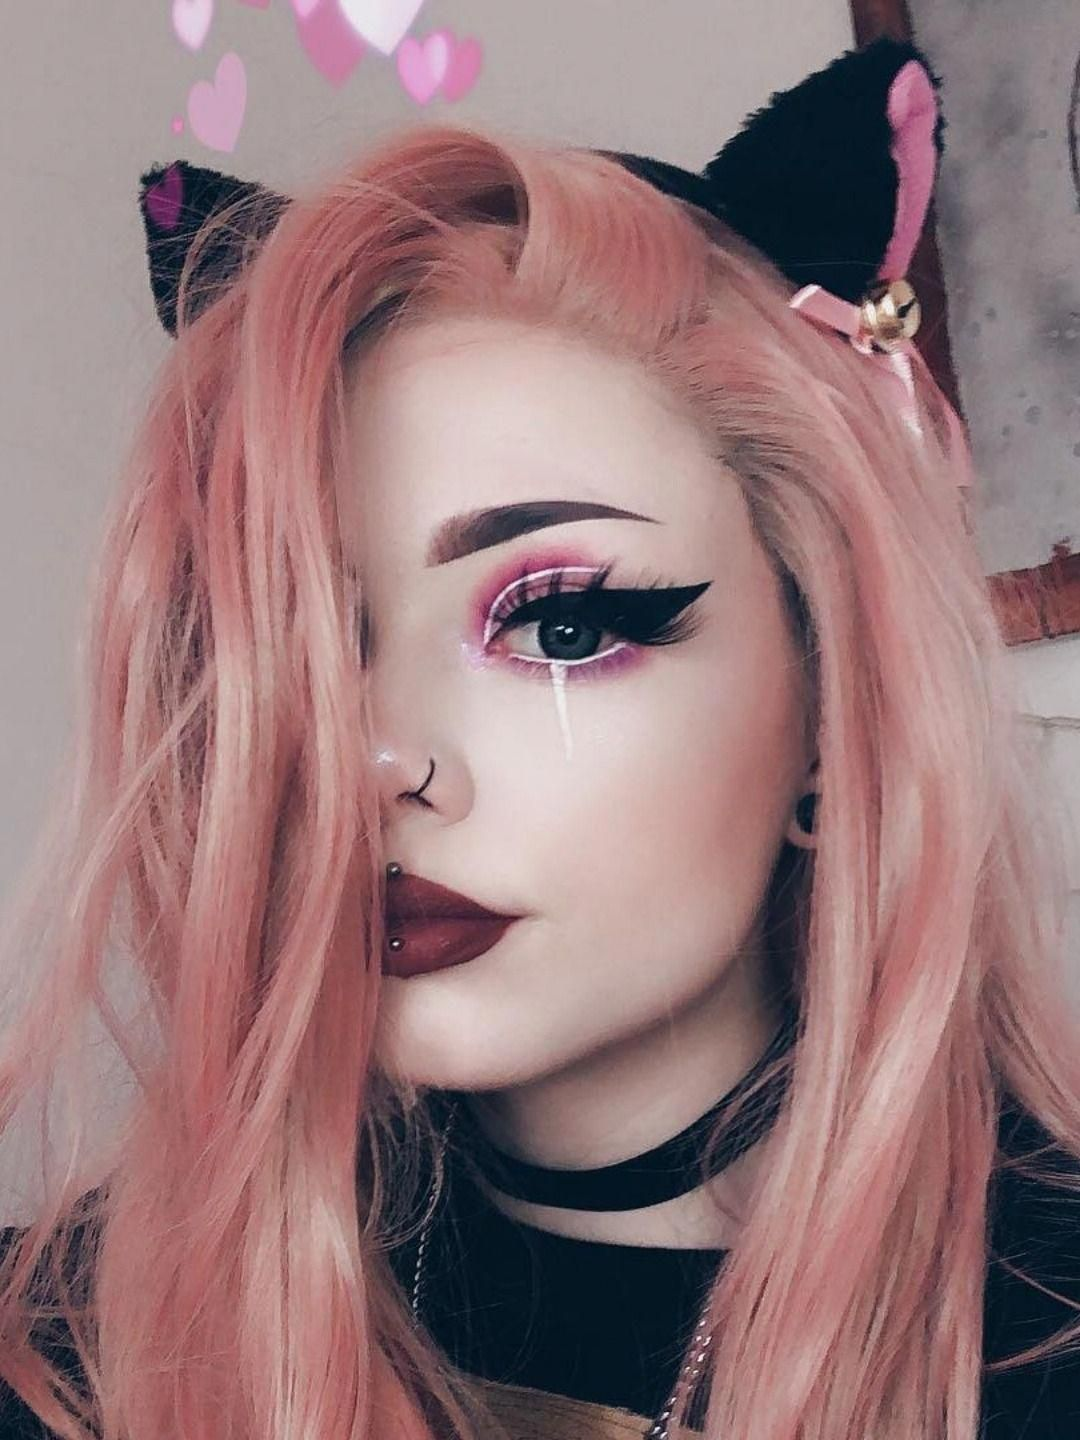 What A Pretty Cat Girl Candypink Coral Haircolor Hairstyles Makeup In 2020 Halloween Makeup Pretty Cool Halloween Makeup Cute Halloween Makeup